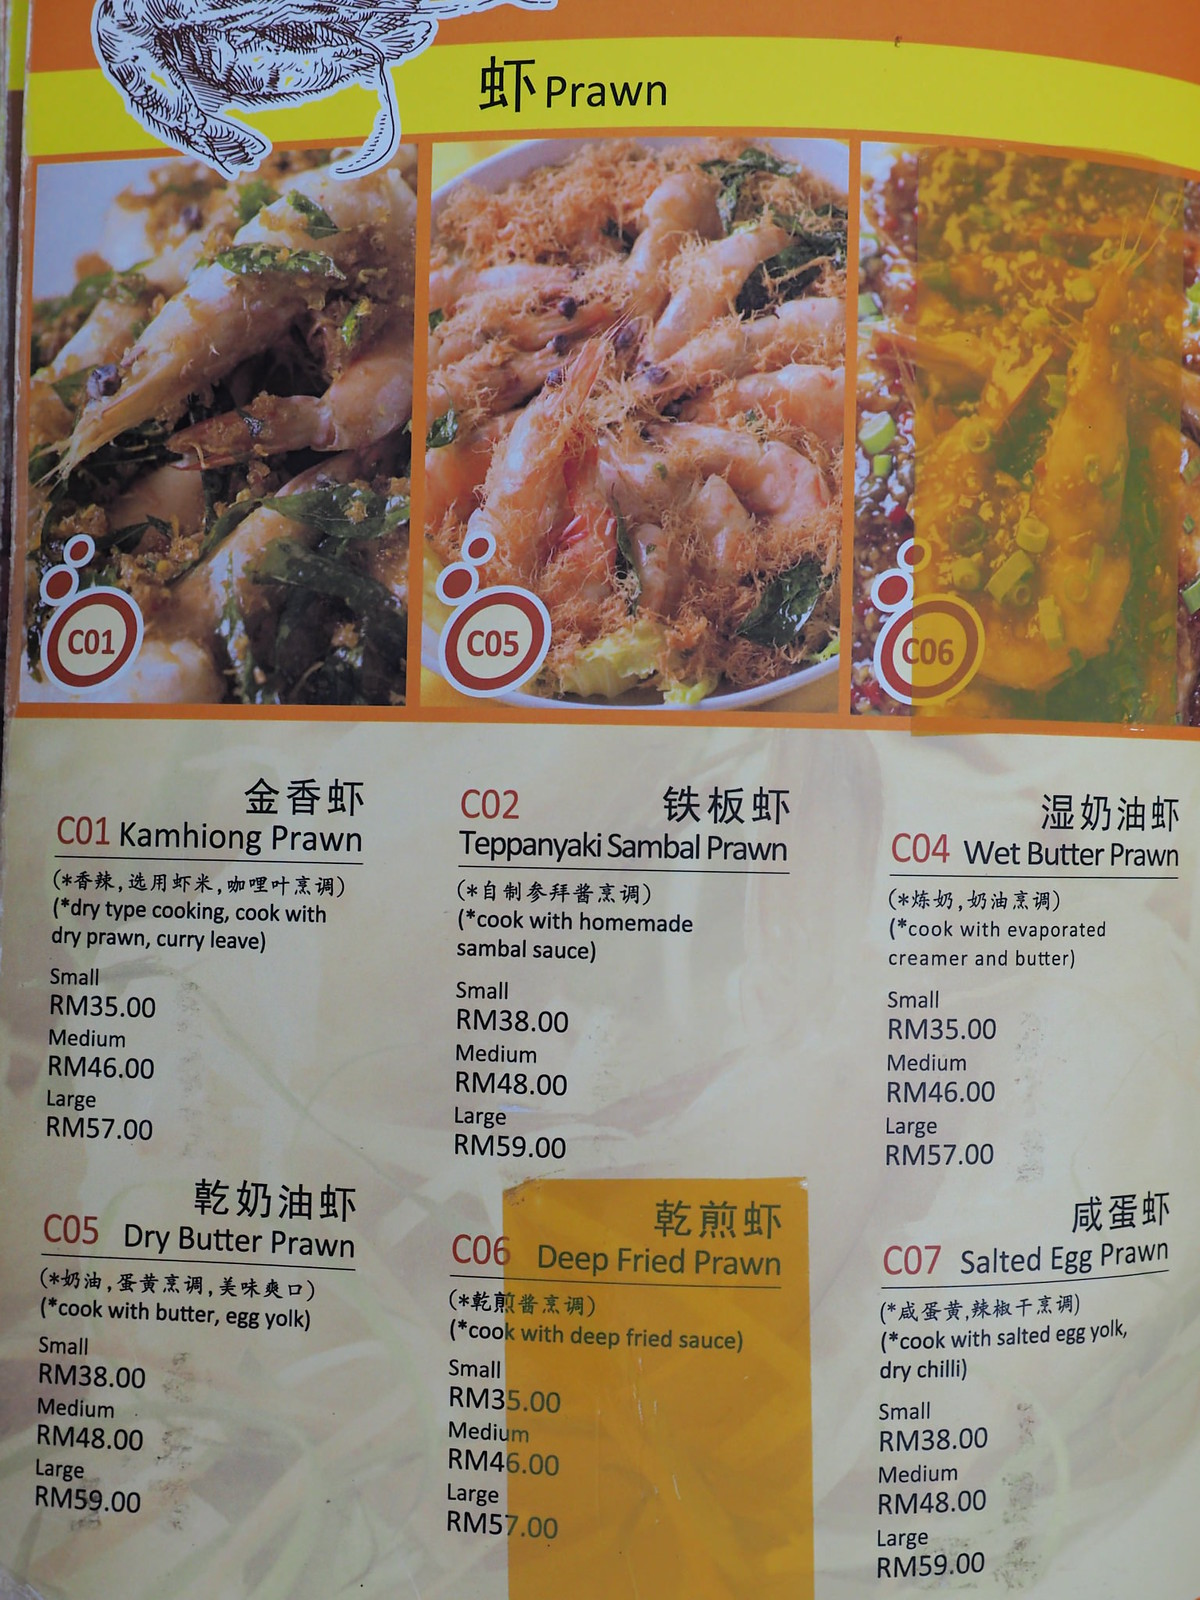 Prawn menu from Pangkor Village Seafood, Taman Megah